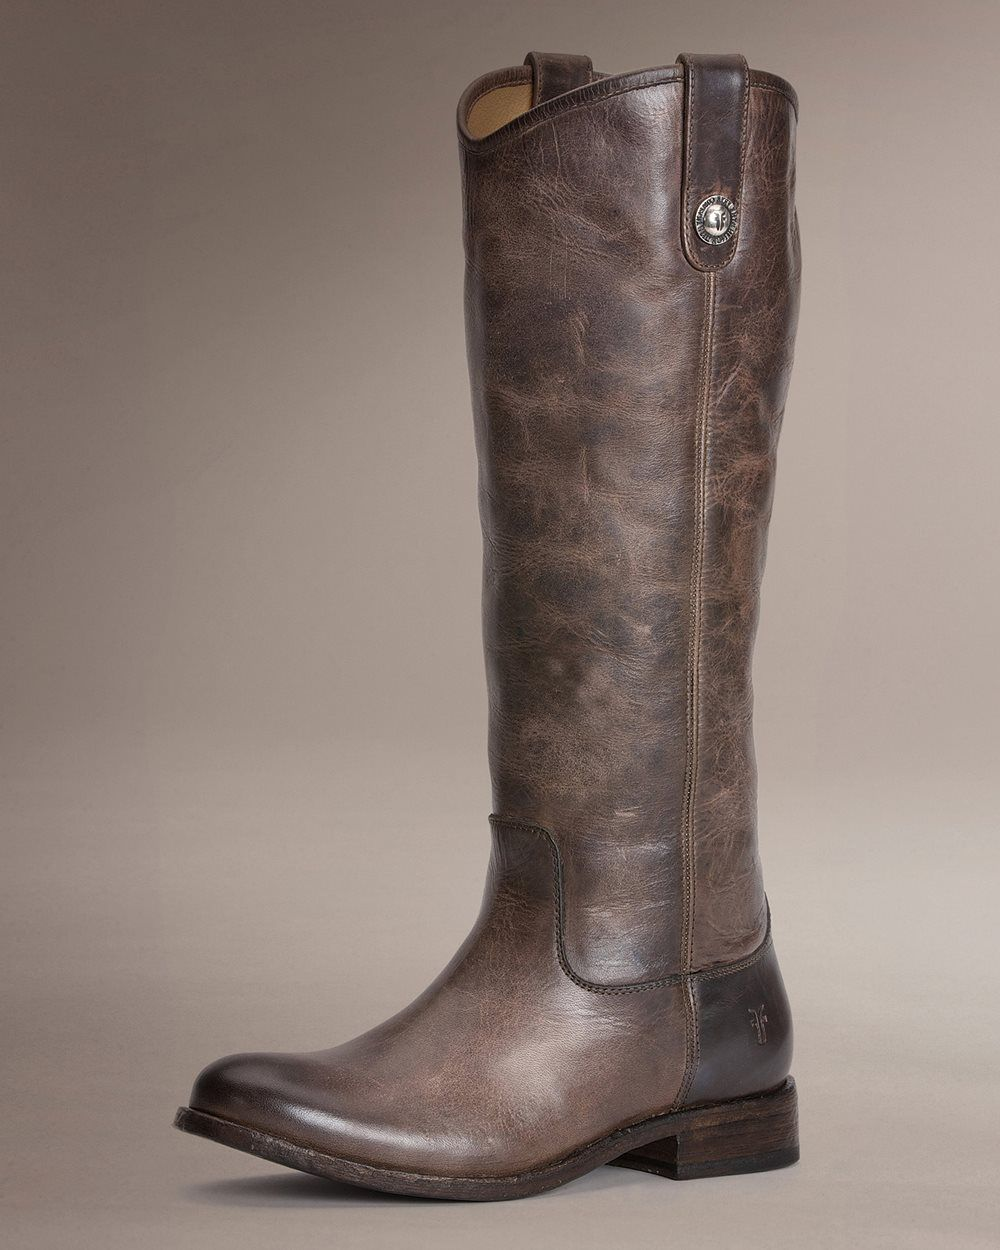 Shop FRYE New Arrivals | Women's Leather Boots | Since 1863. Frye Melissa  ButtonFrye ...